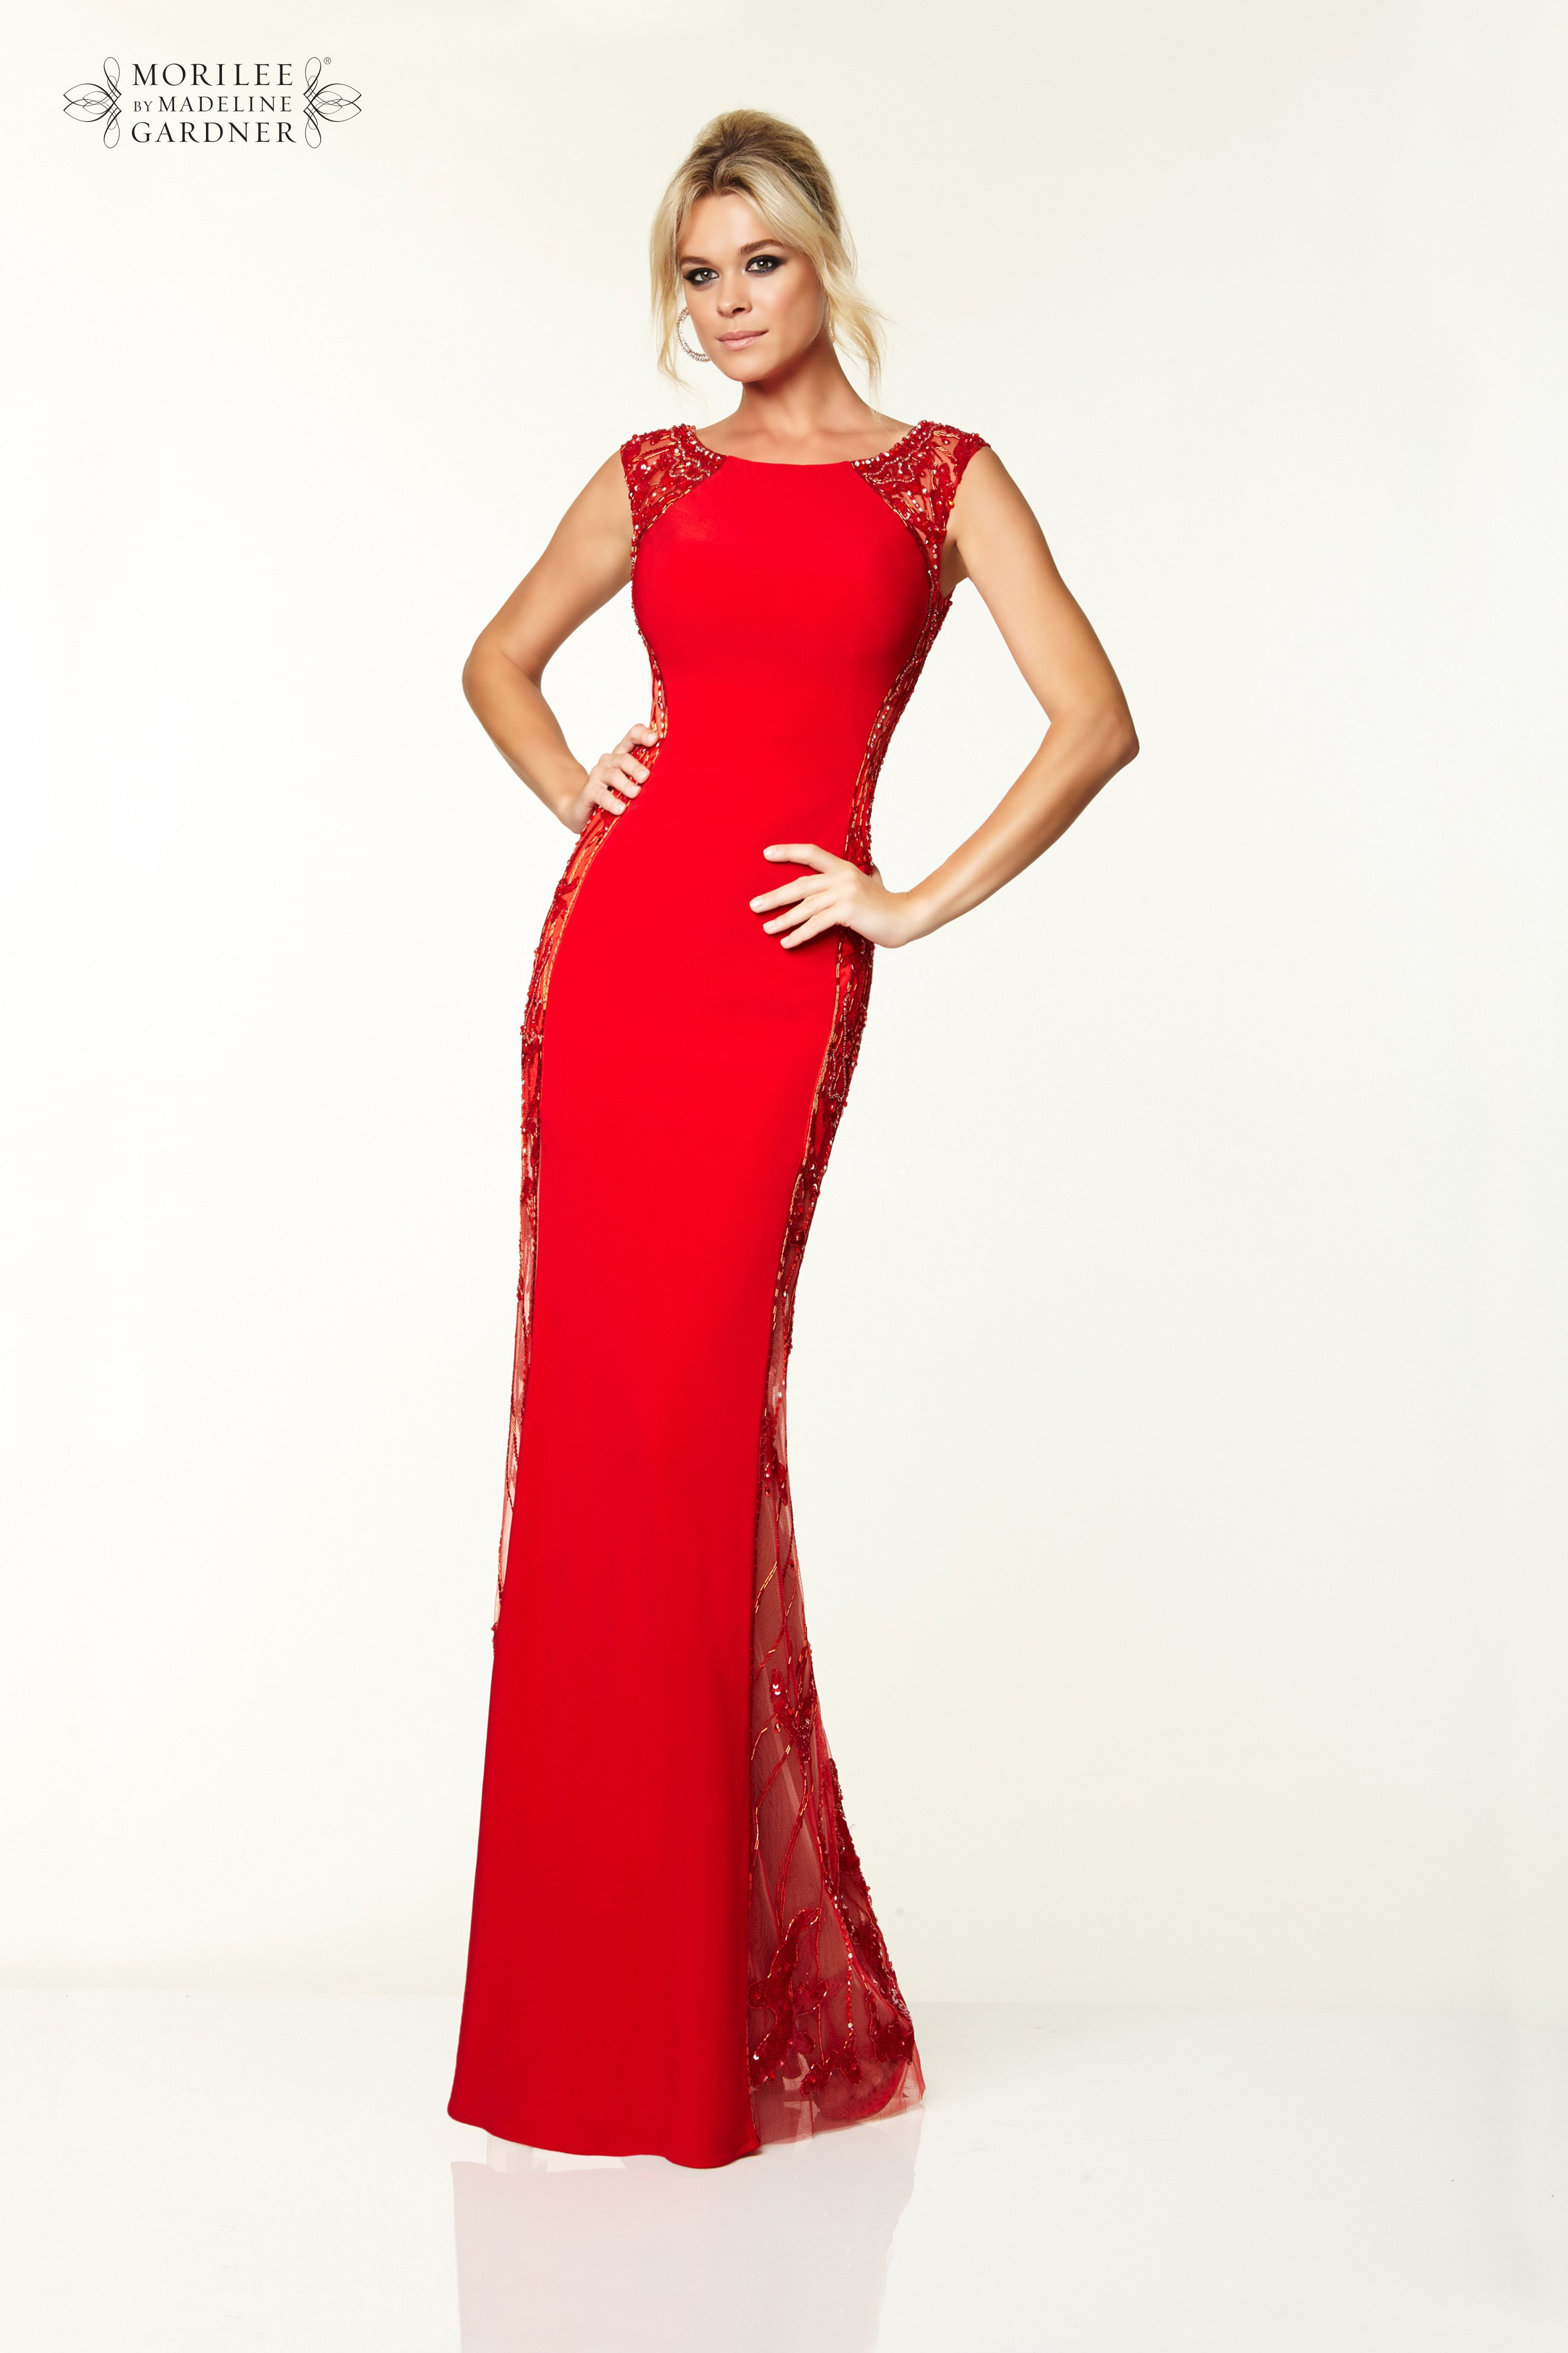 Mori Lee Paparazzi Prom Dress - Style 97029 - Available in Red ...